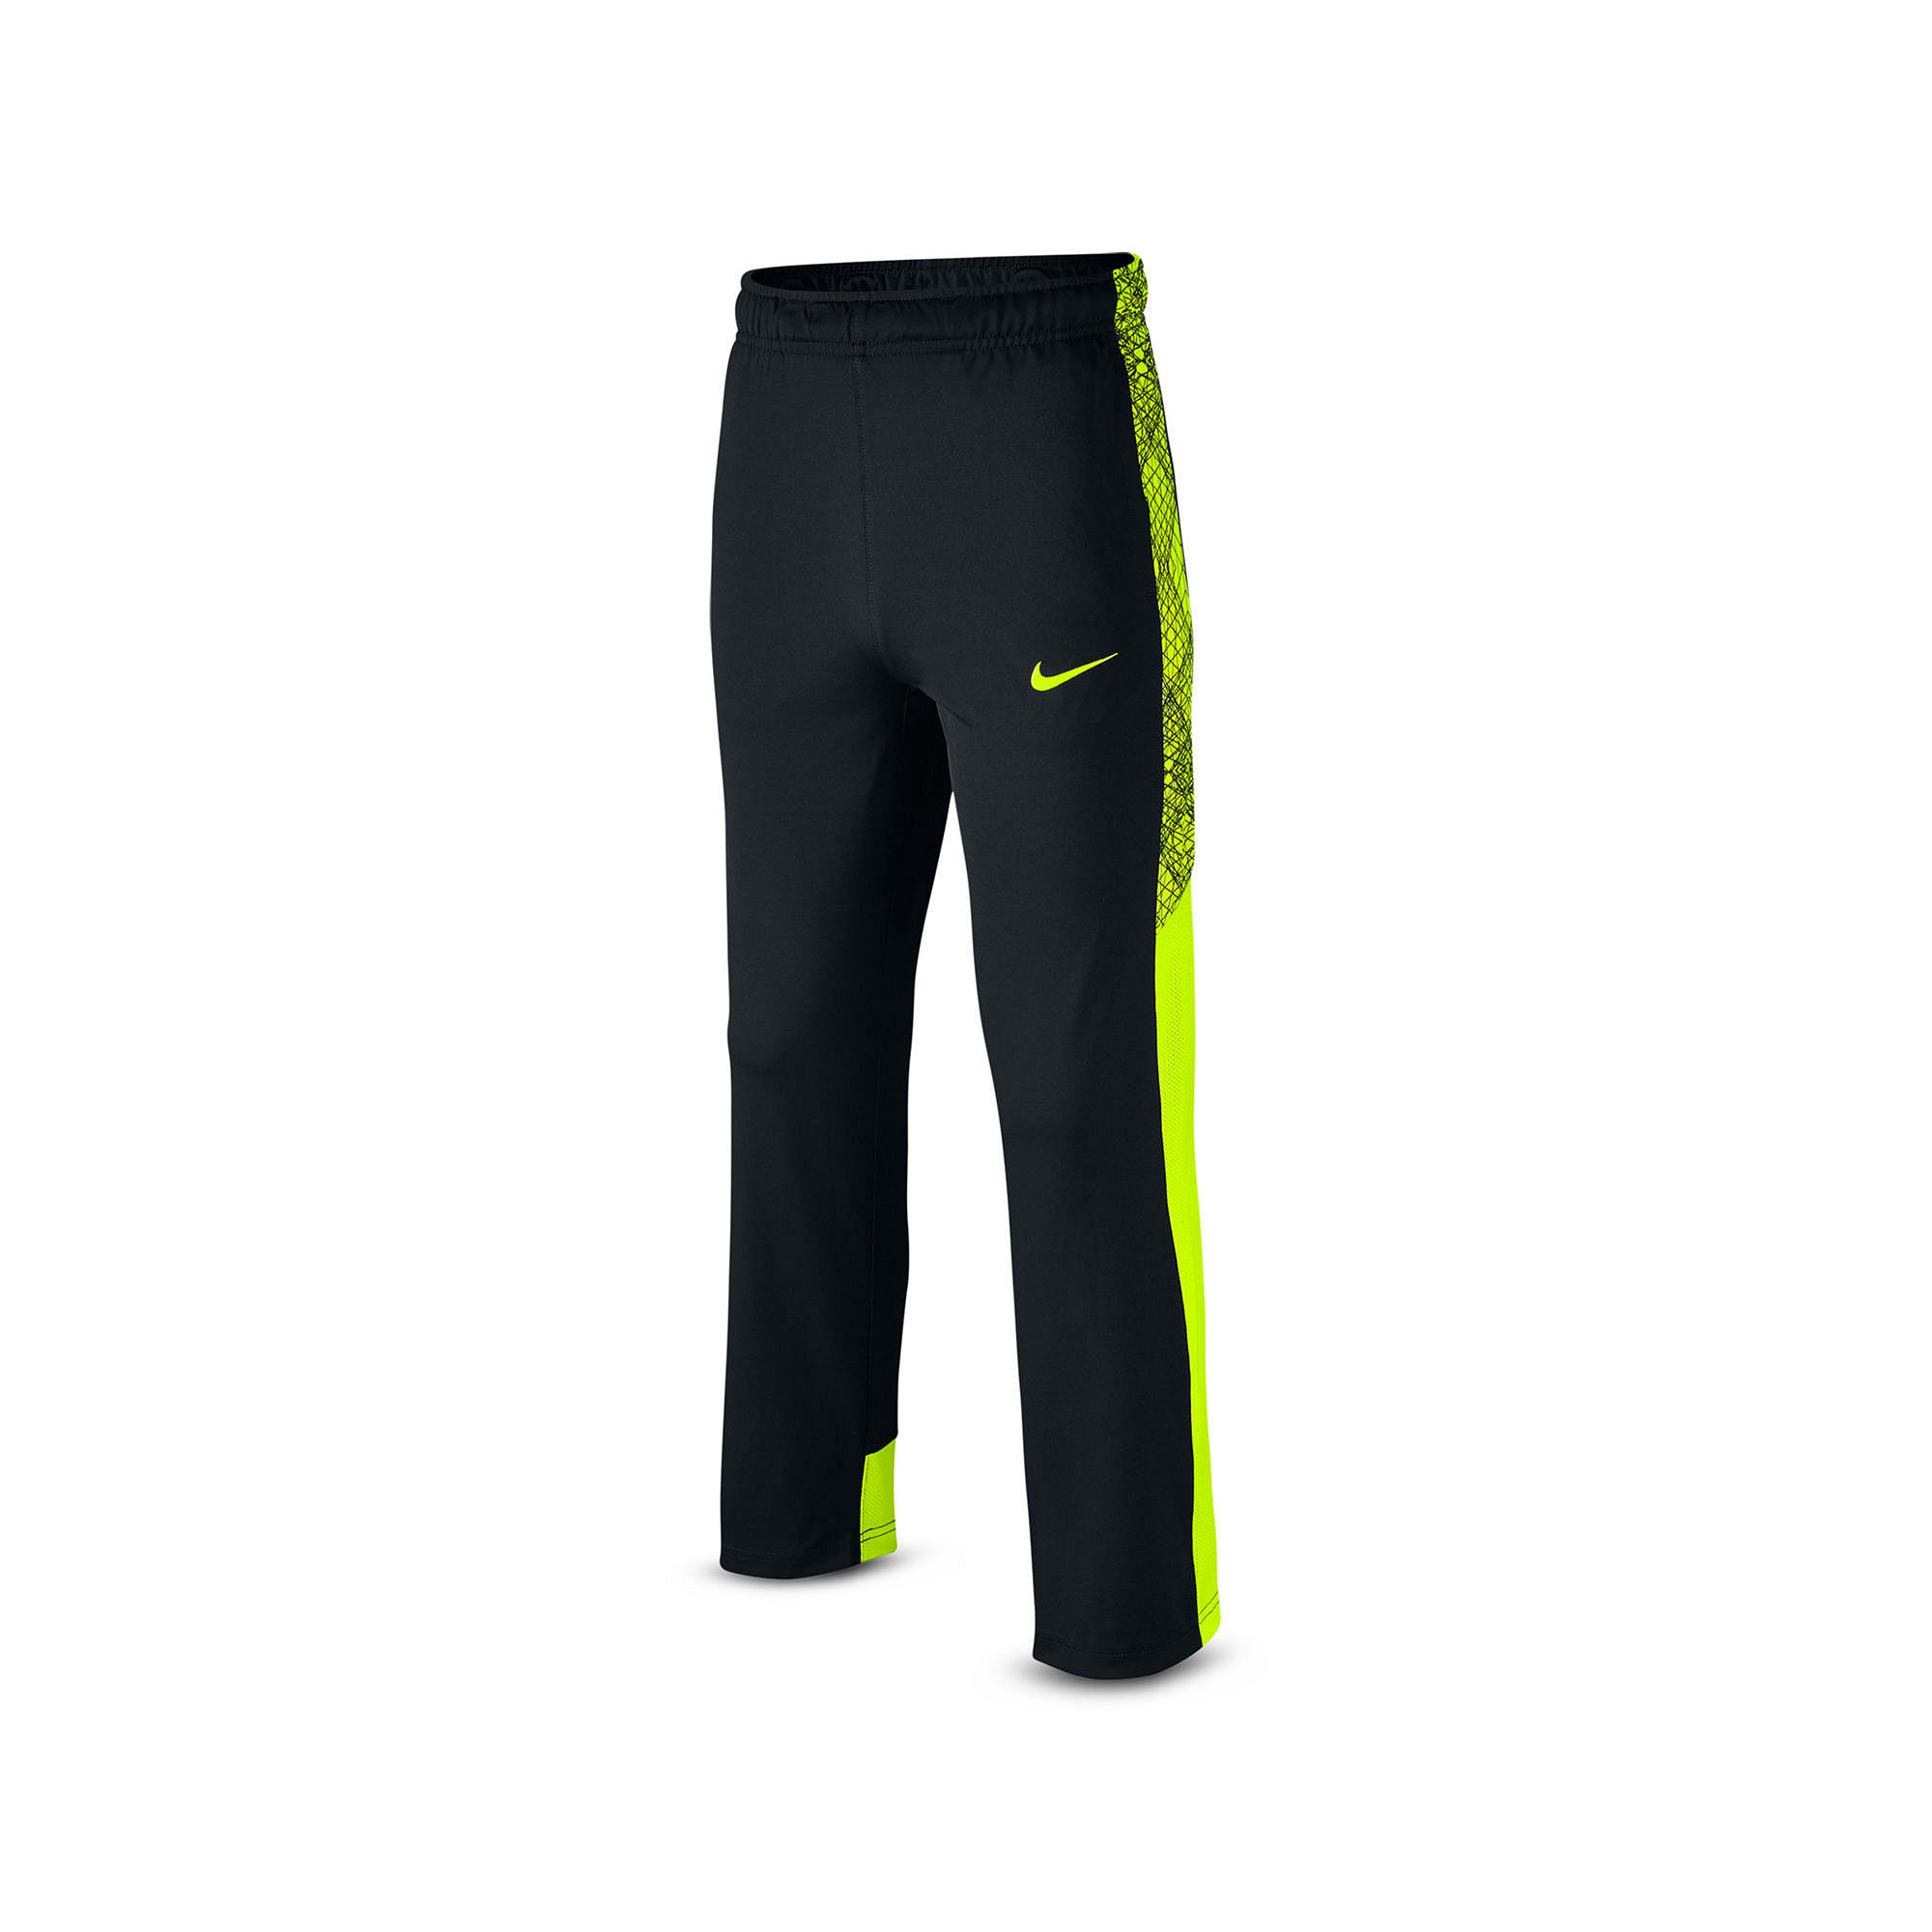 info for 38a55 ea6c4 UPC 886551894127 product image for Nike Dri-FIT Legacy Pants - Boys 8-20